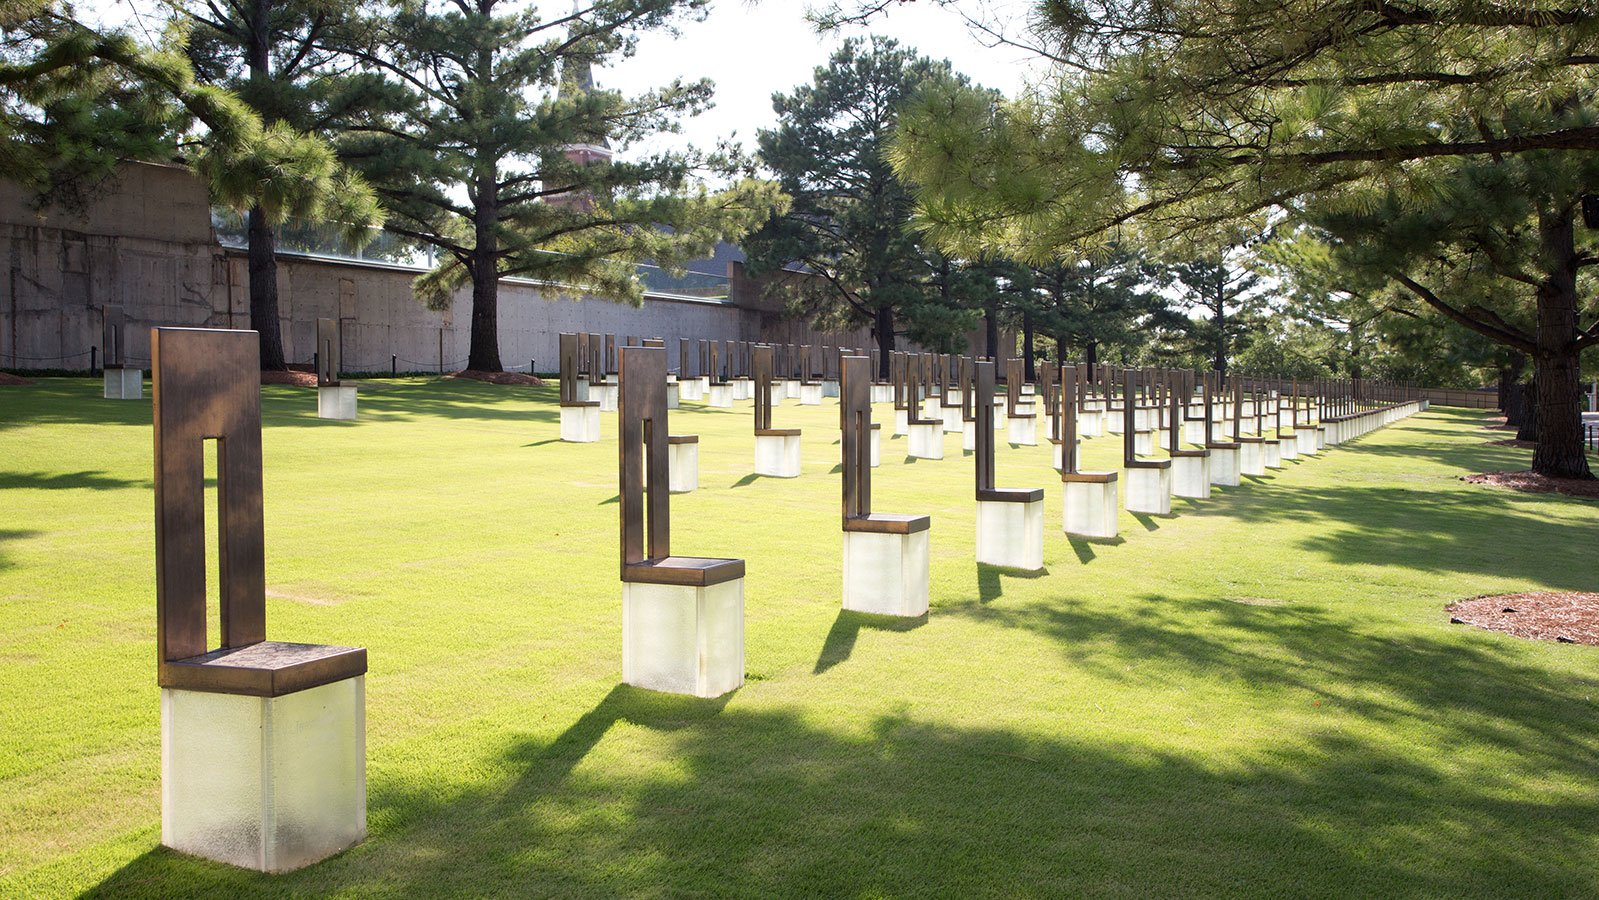 The field of 168 empty chairs represents the lives taken on April 19, 1995